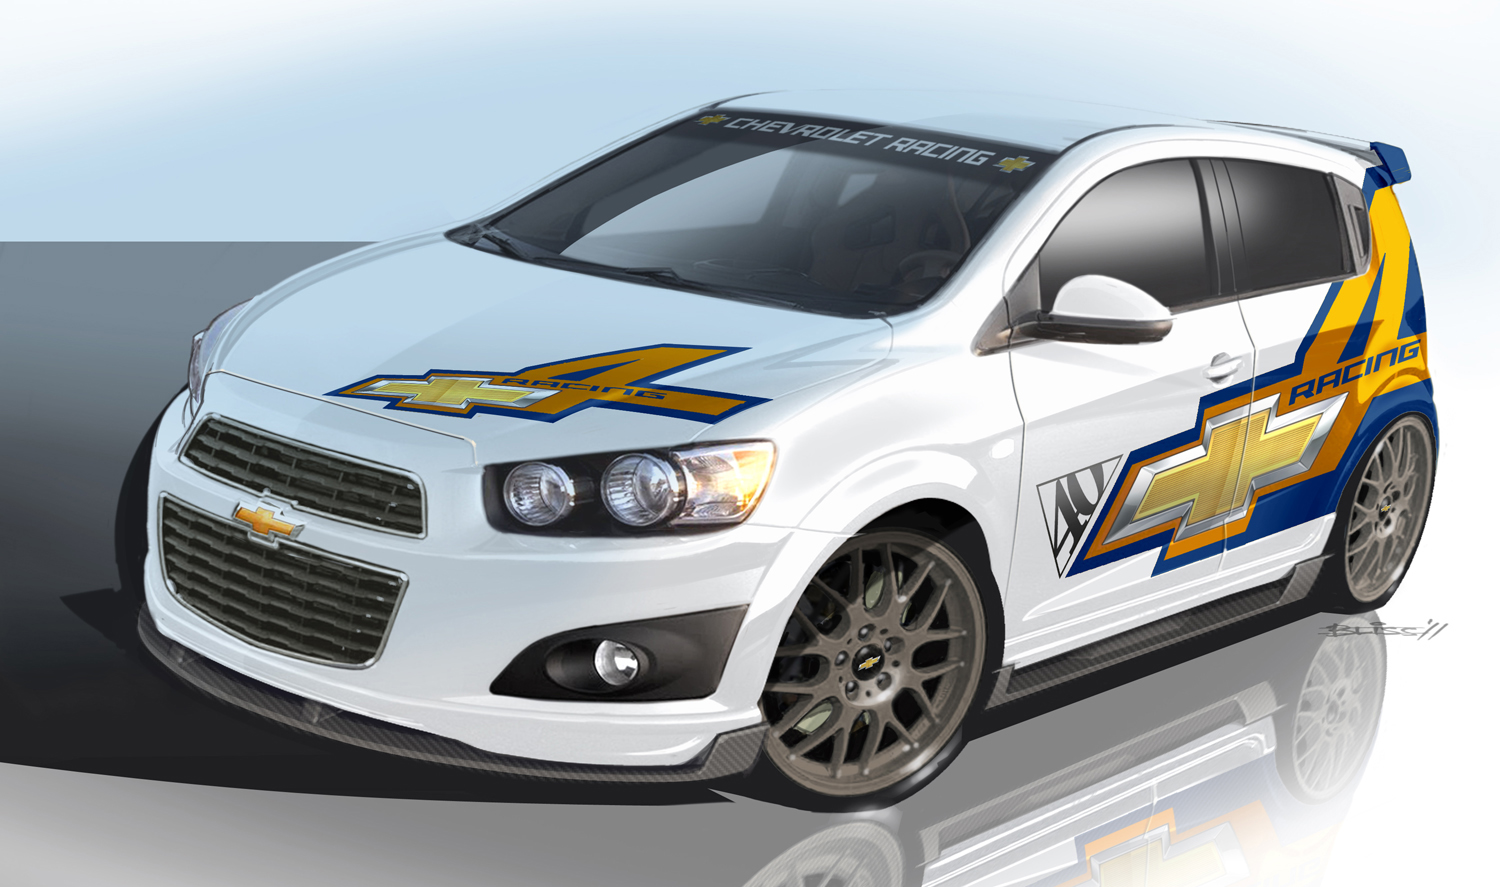 Chevrolet Sonic Owners Manual: Accessories and Modifications